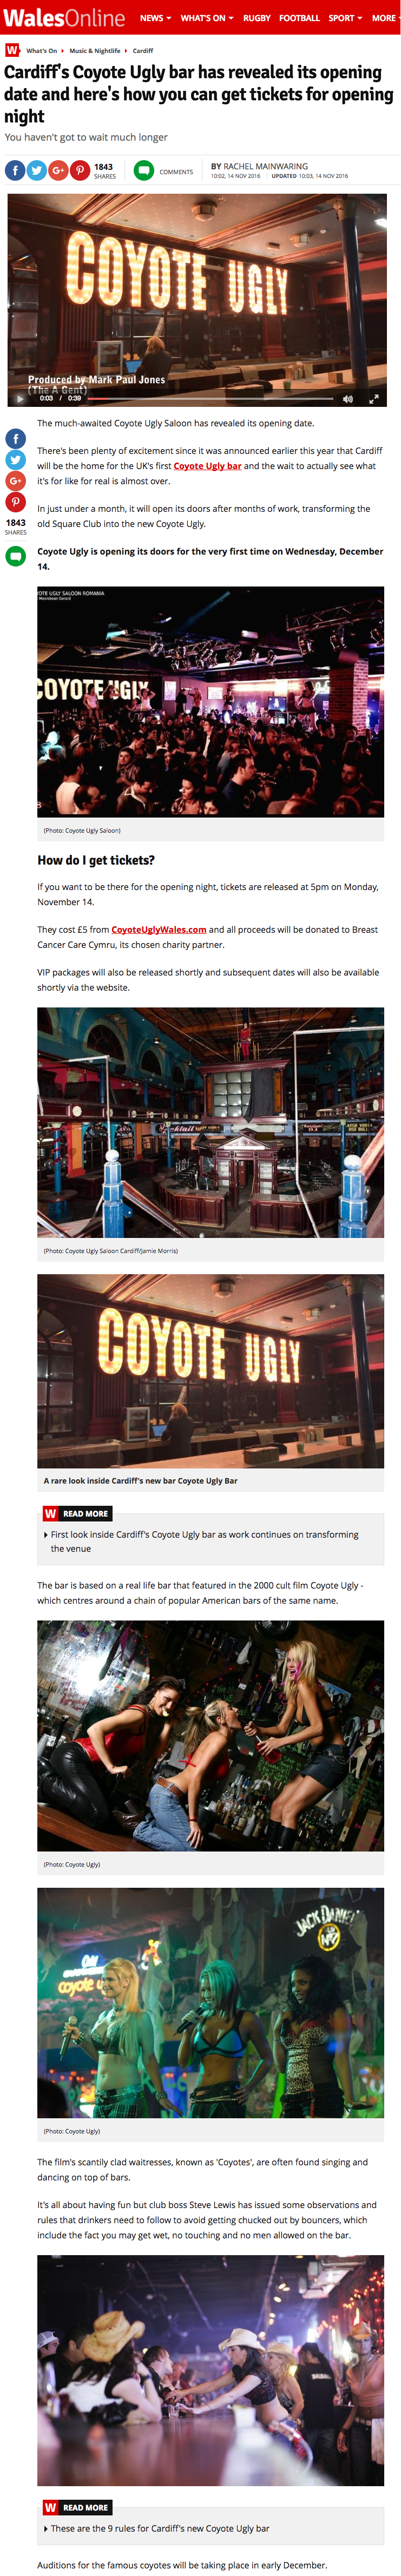 Coyote Ugly Cardiff Opening